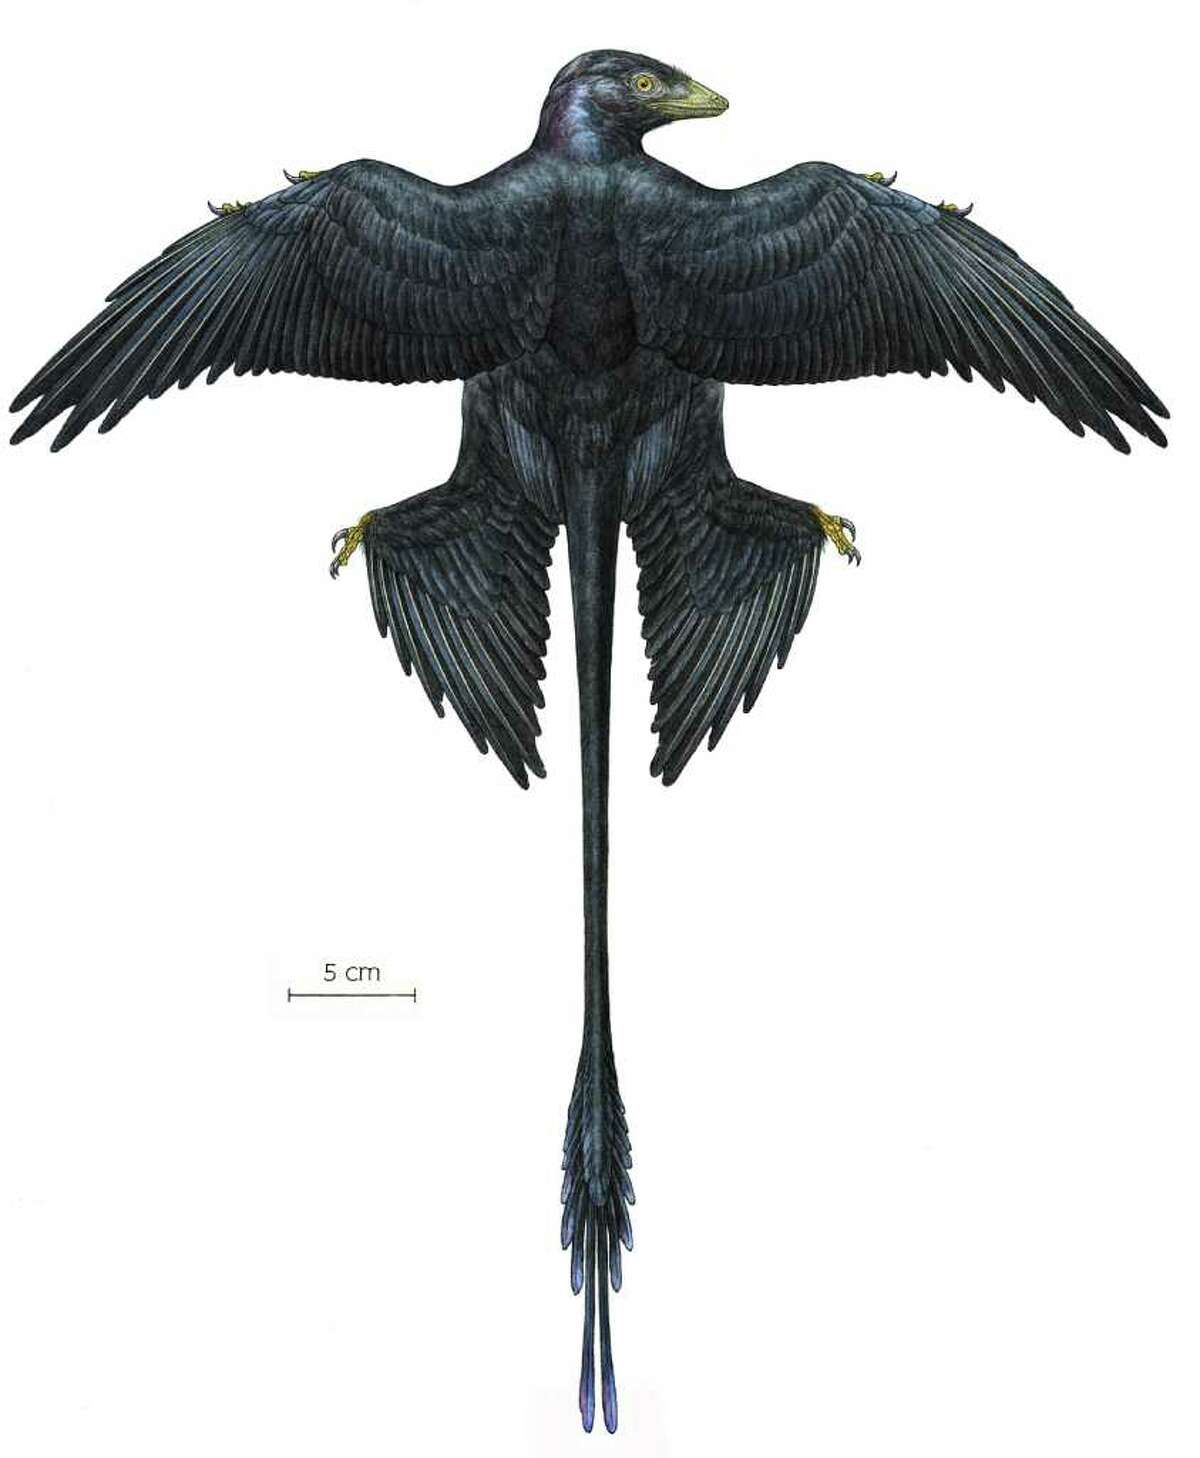 The microraptor was a four-winged dinosaur that lived some 130 million years ago in what's now the northeastern part of China.